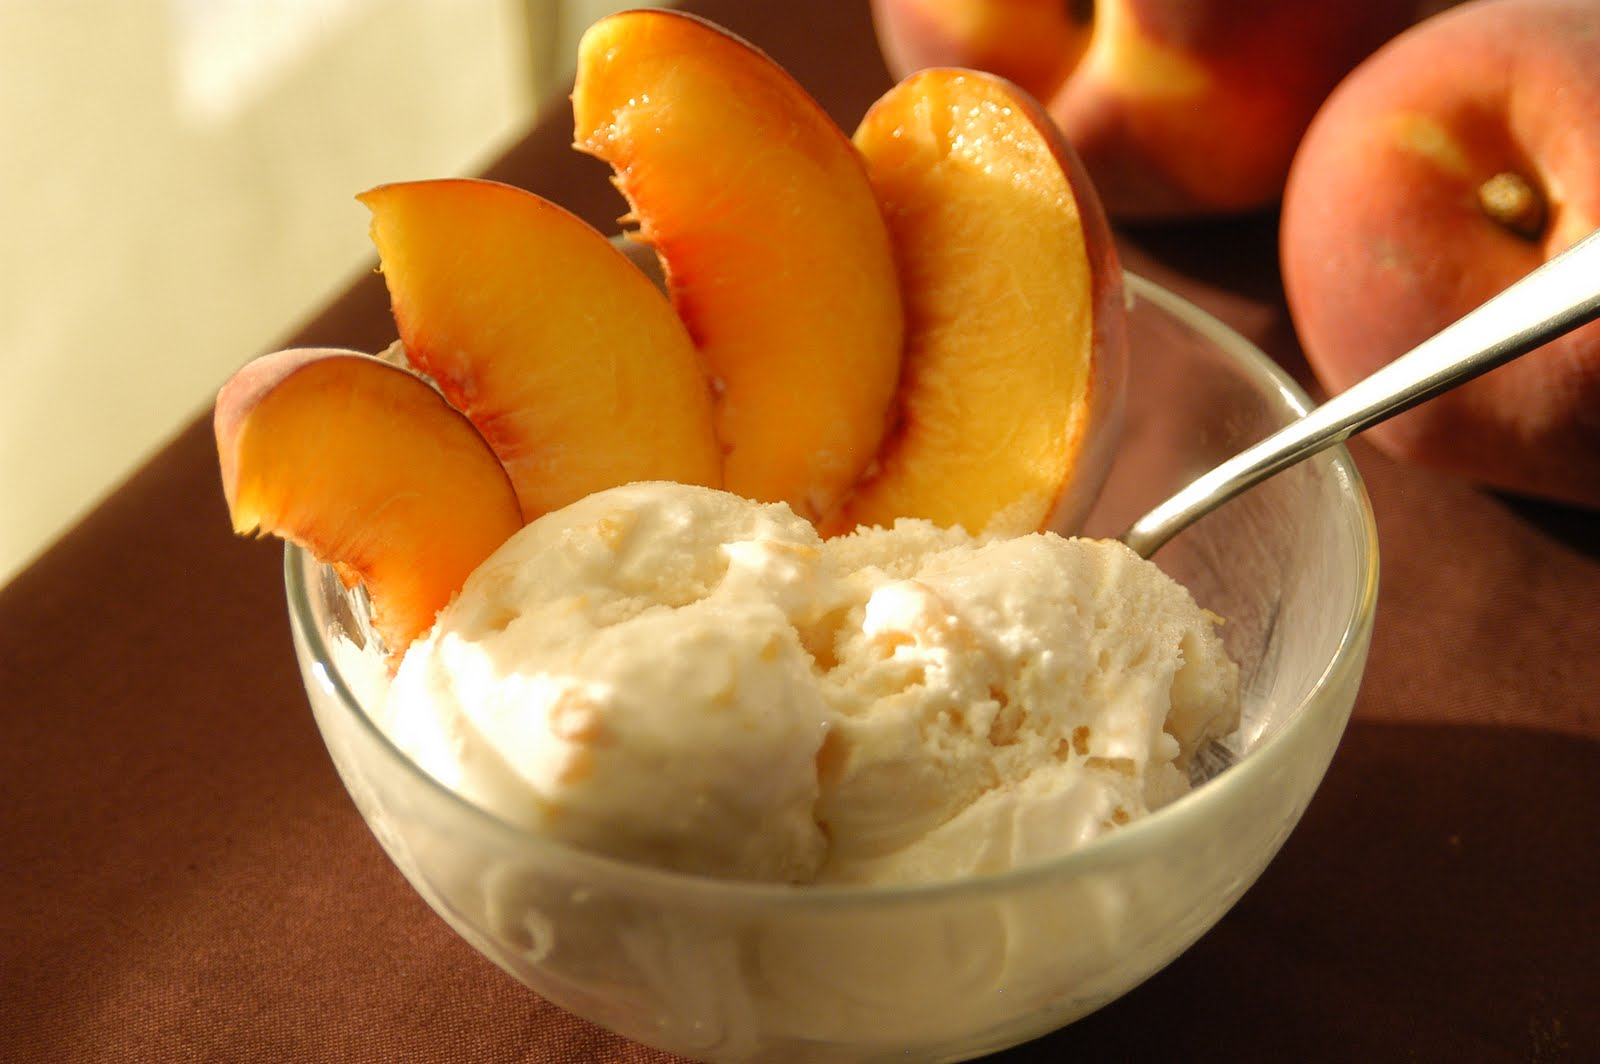 ... summer afternoon- homemade peach ice cream. Grab a spoon and dig in